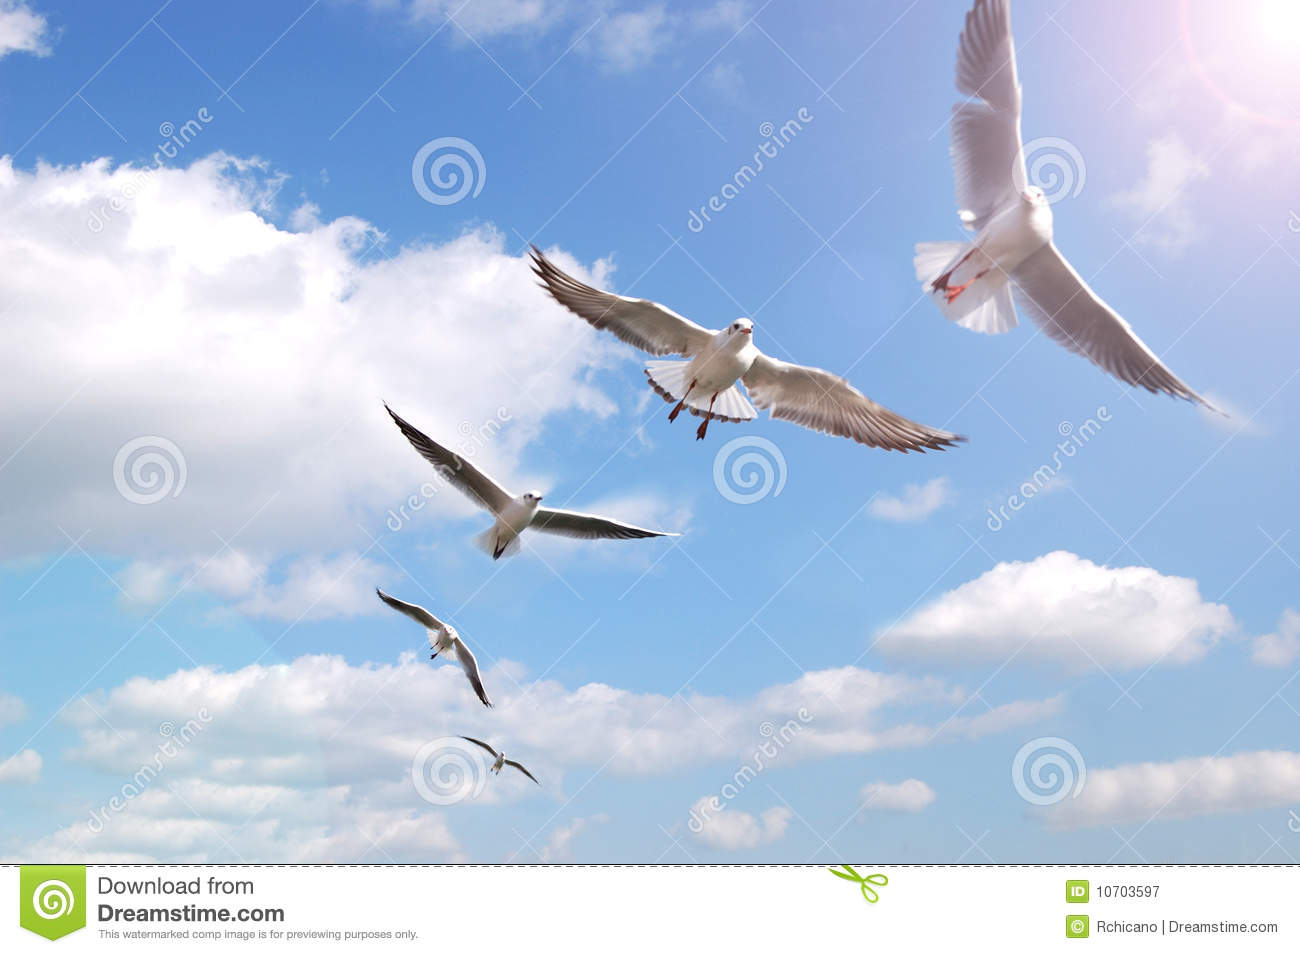 Flying Birds Free Stock Photos Download 3 416 Free Stock: Birds On Air Stock Image. Image Of Leadership, Cloud